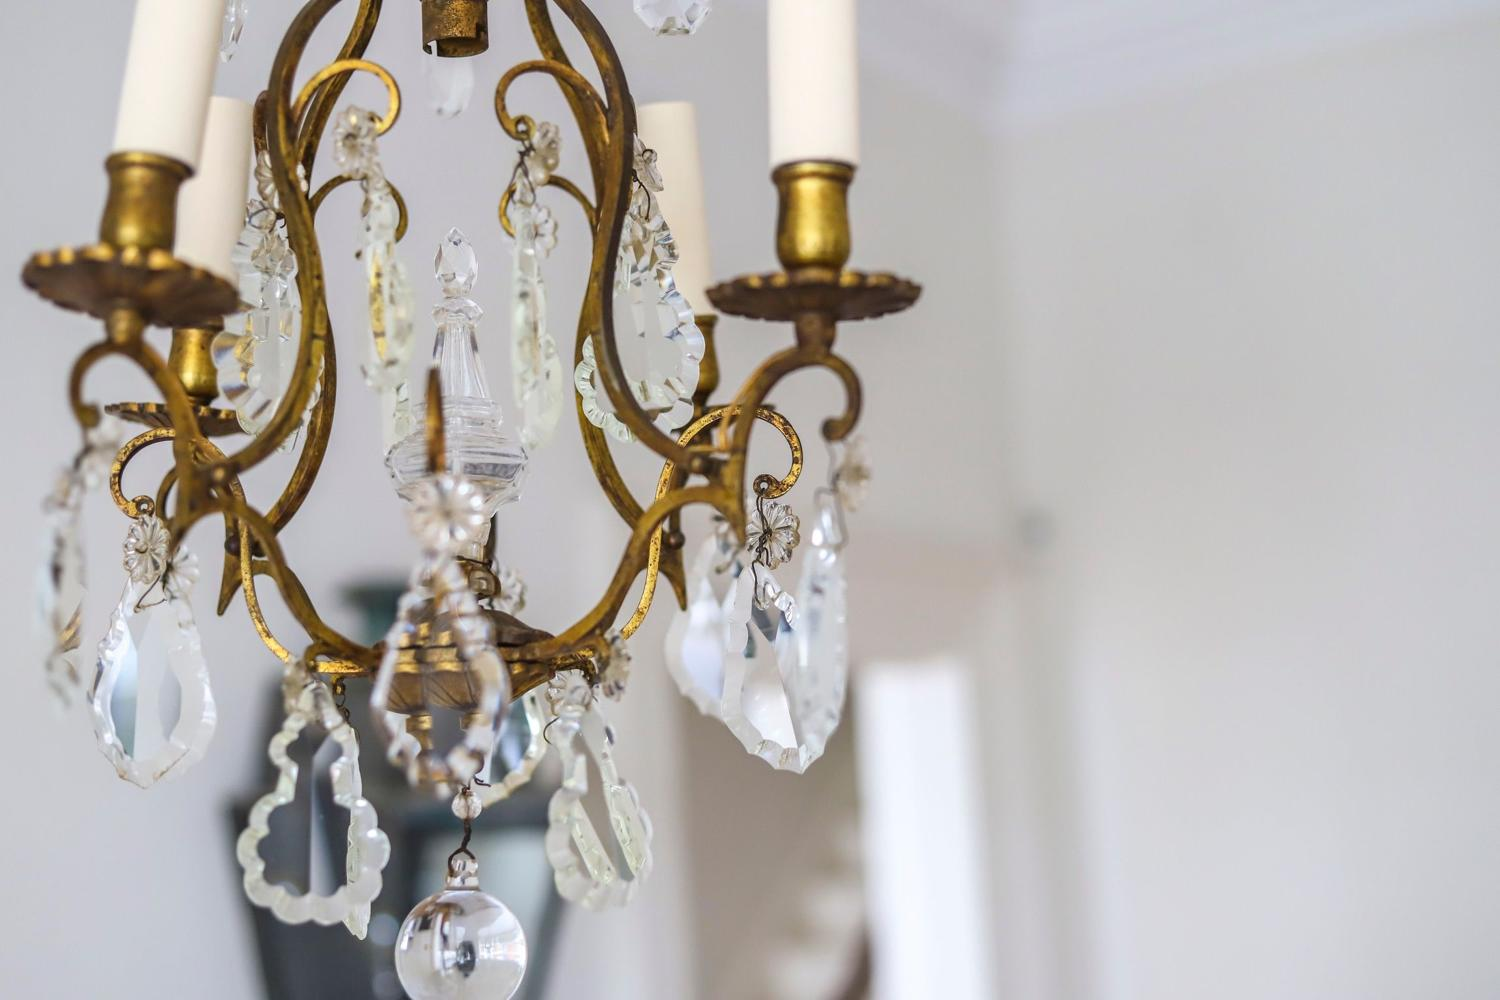 19th century French cage 4 branch chandelier